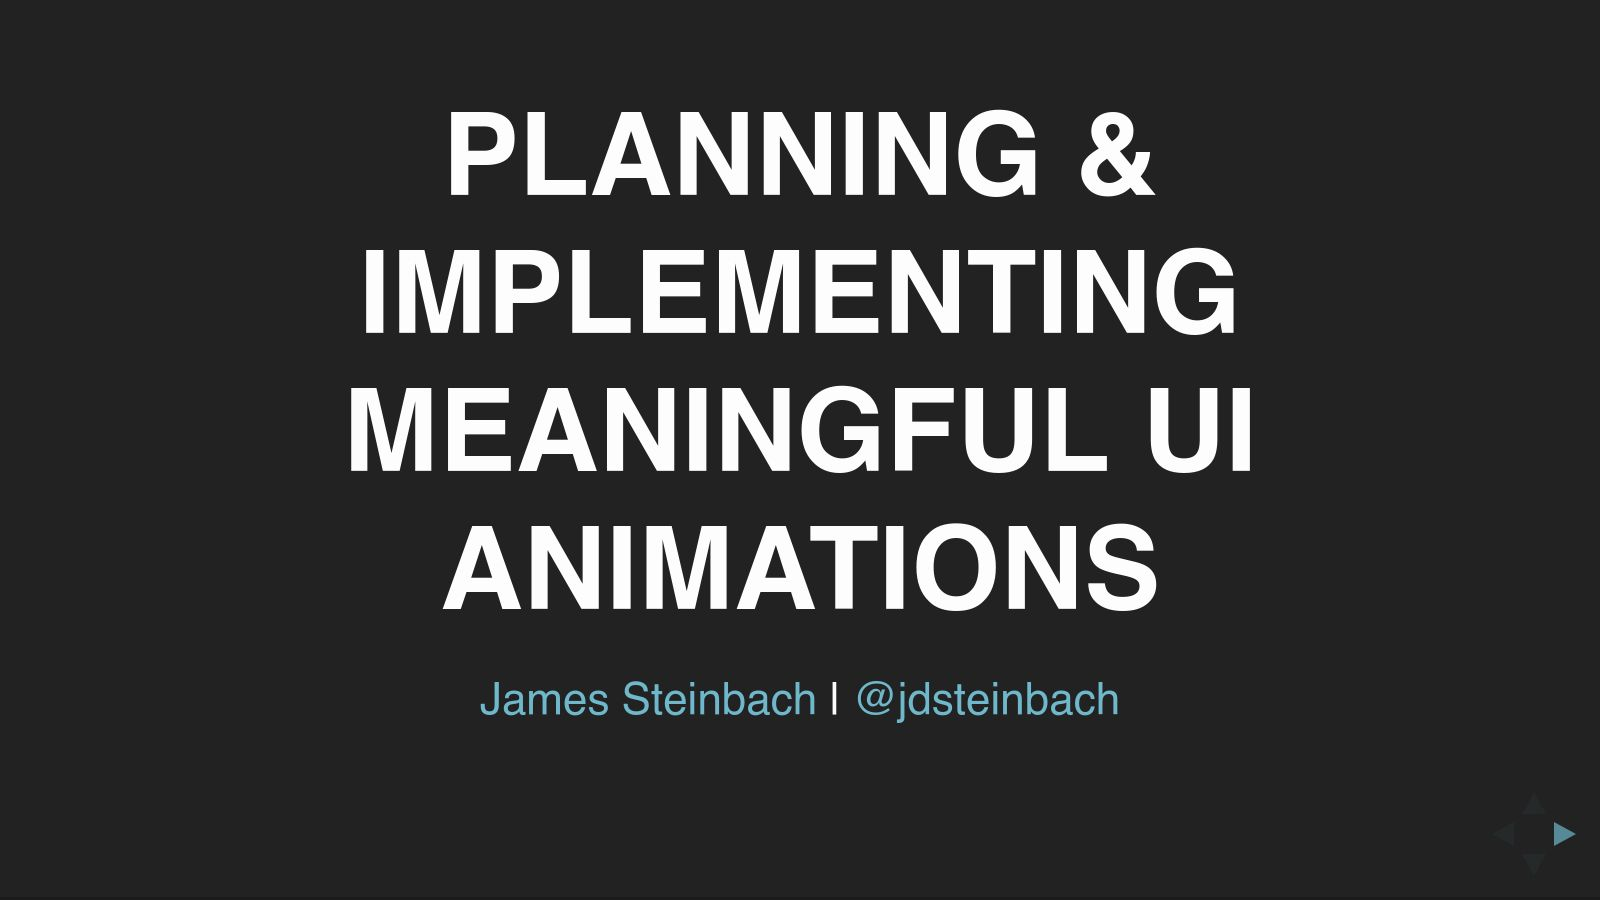 Planning & Implementing Meaningful UI Animations